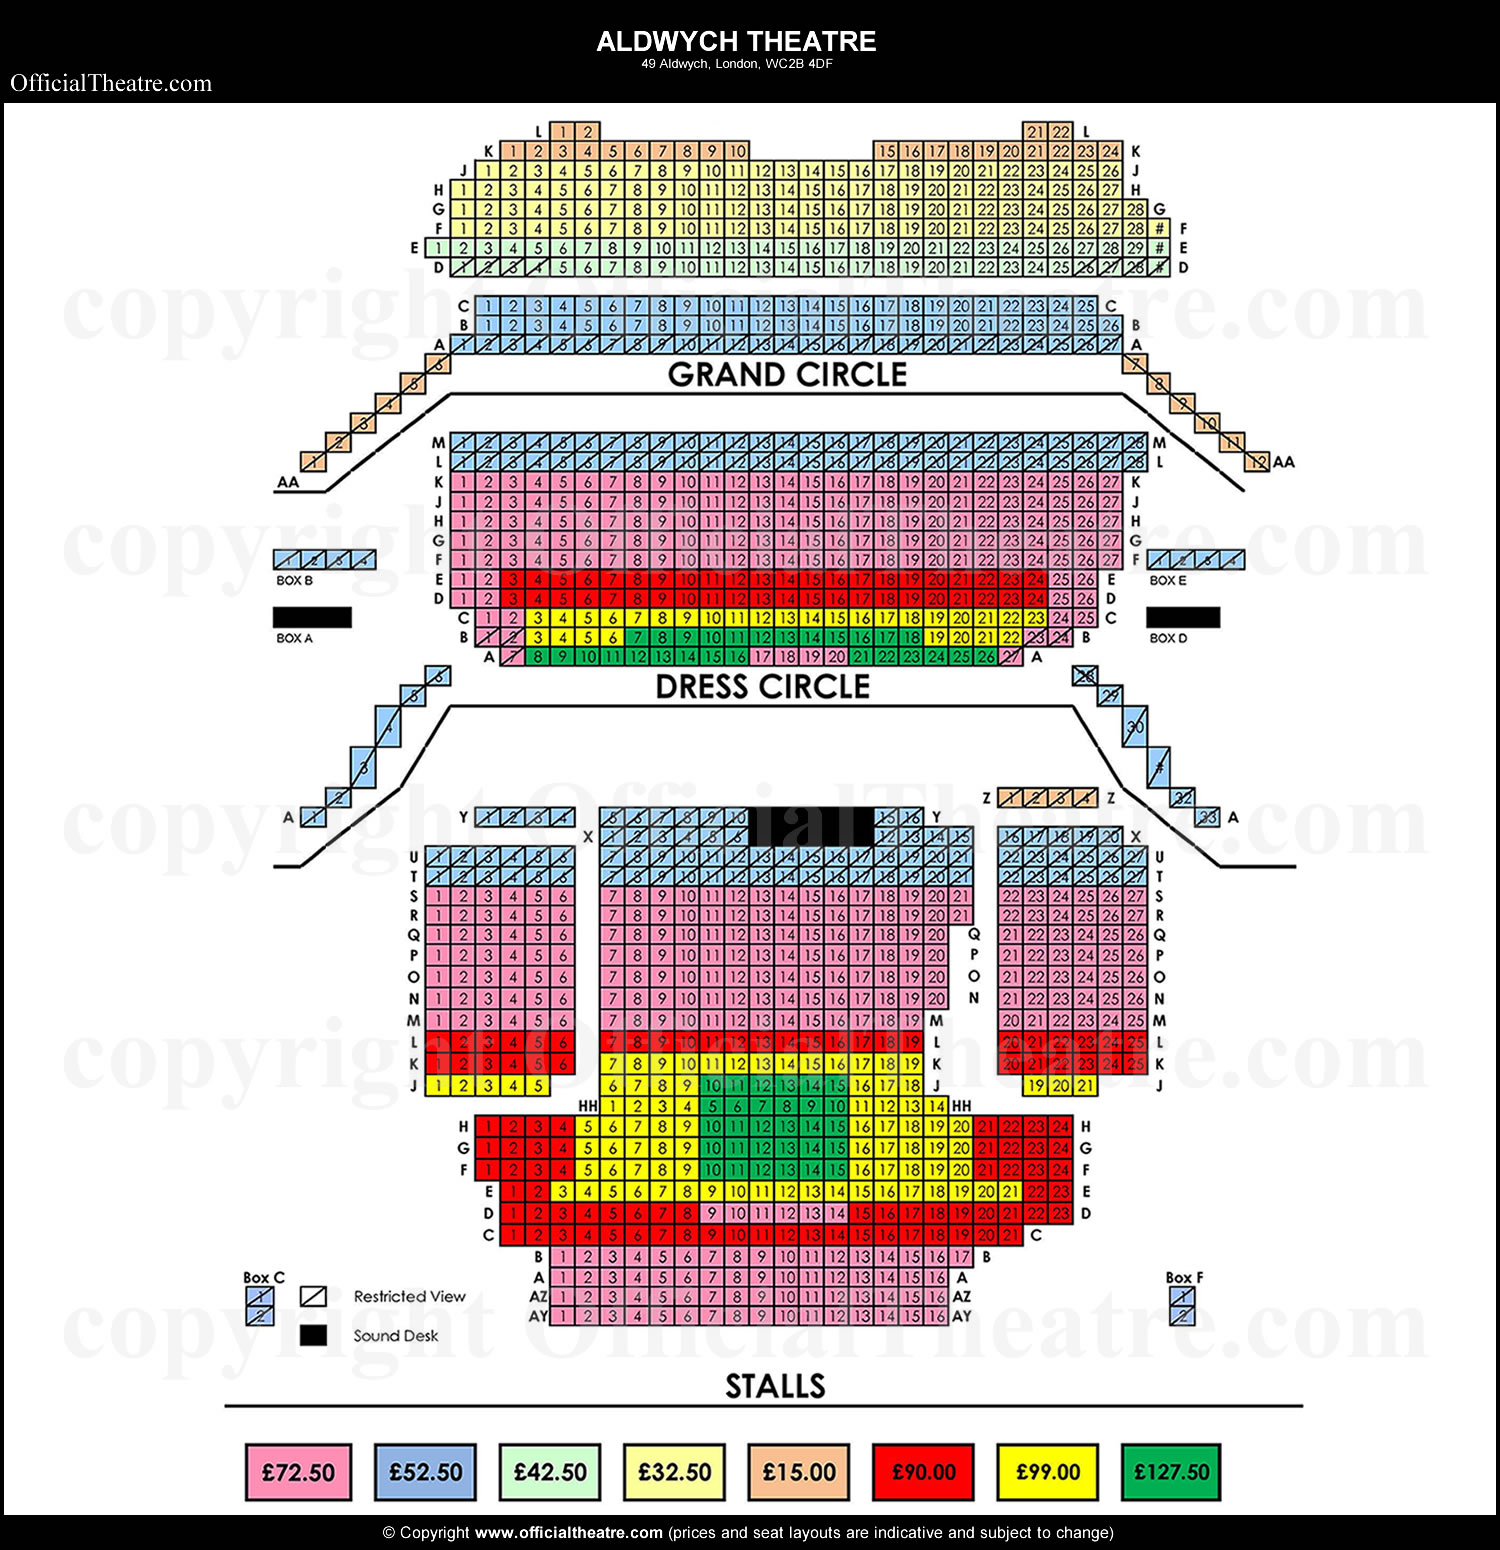 Aldwych Theatre seat prices Beautiful